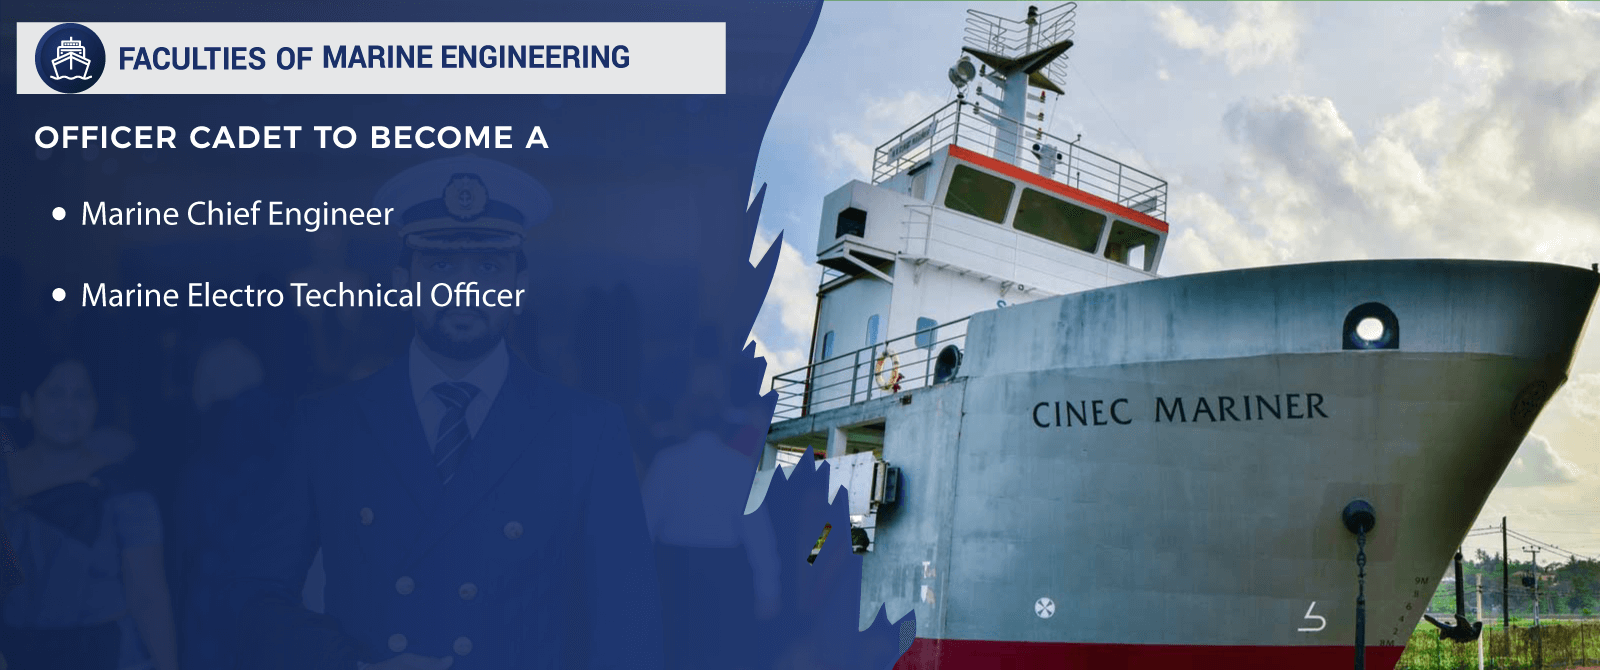 main-marine-engineering-001